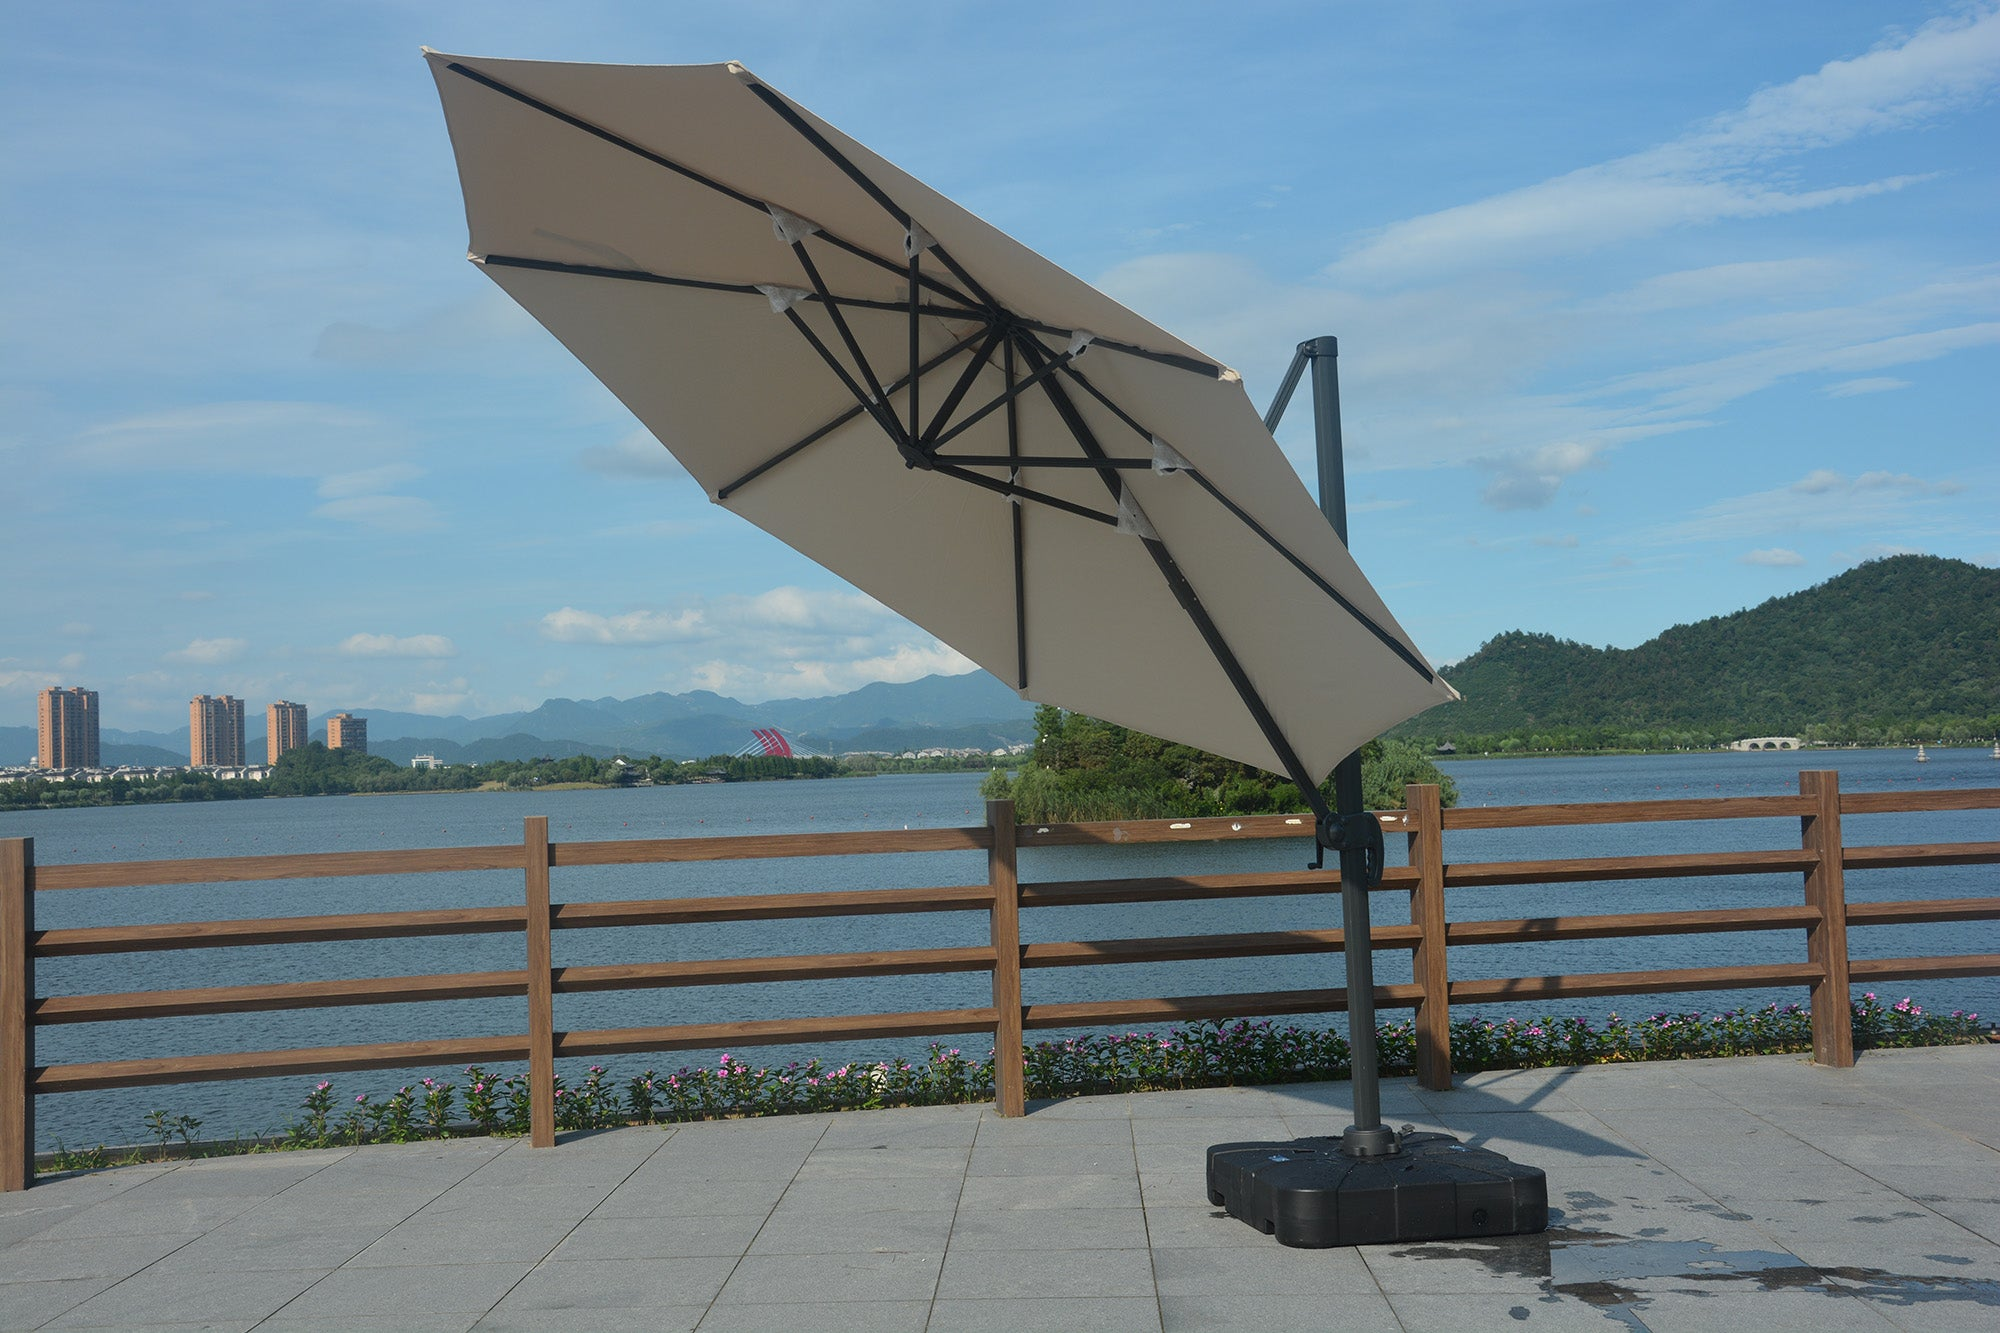 all weather umbrella  Available on www.mrbackyard.com for less than other retailers.